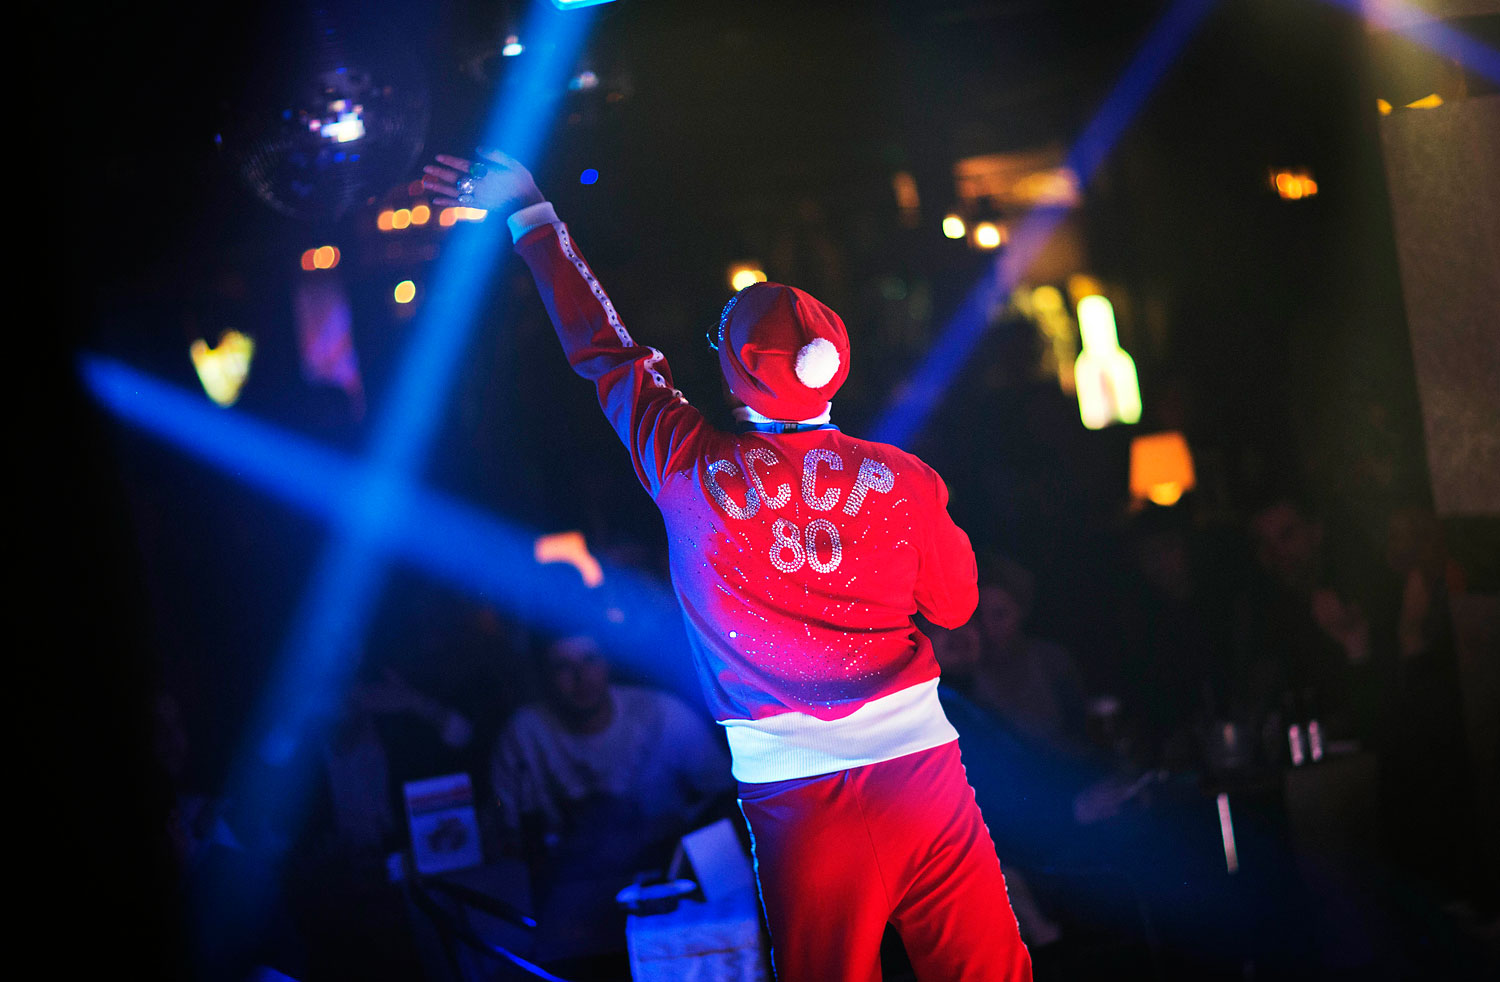 Veranda, who would only his stage name,  performs at the Mayak cabaret in Sochi, Feb. 8 2014.